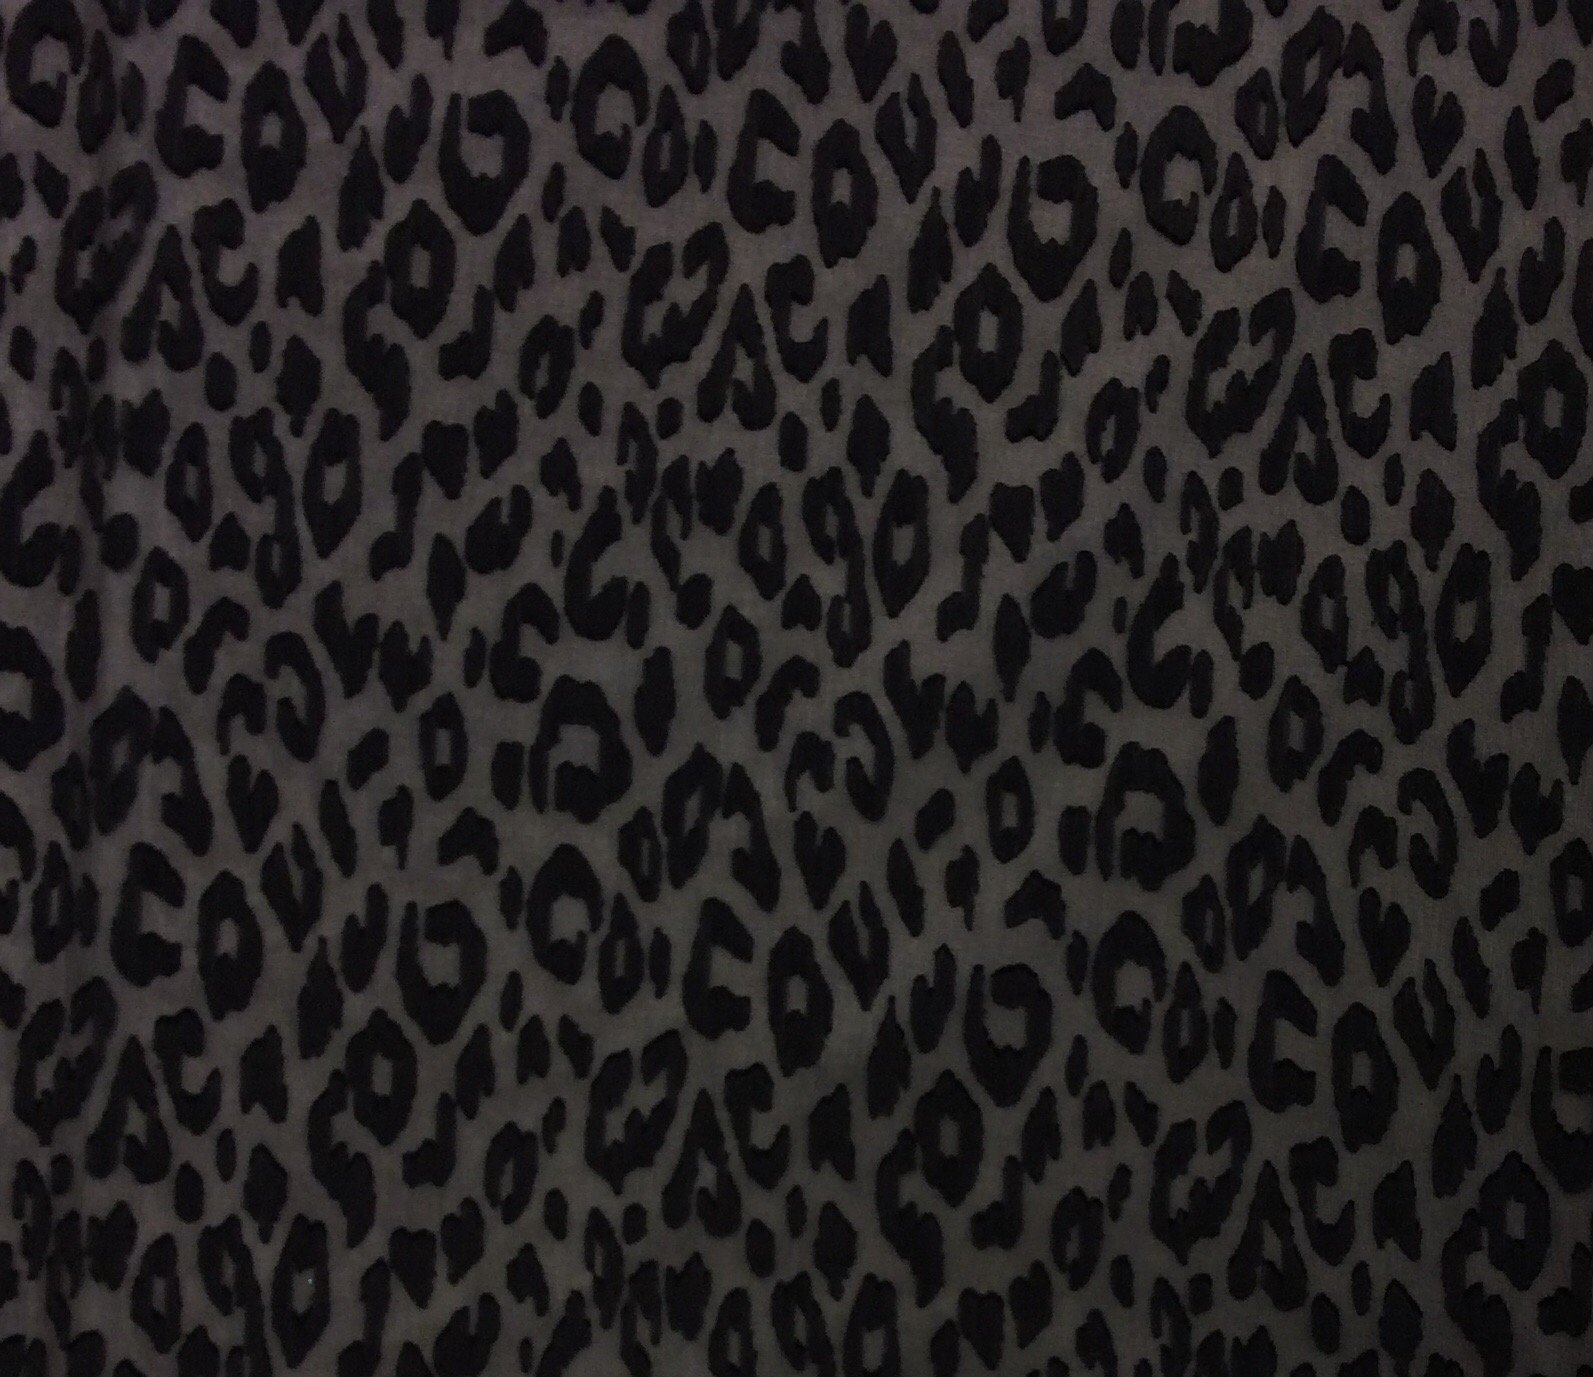 Black Burnout Leopard Print Polyester Chiffon Animal Print Dress Apparel Fabric FM1441